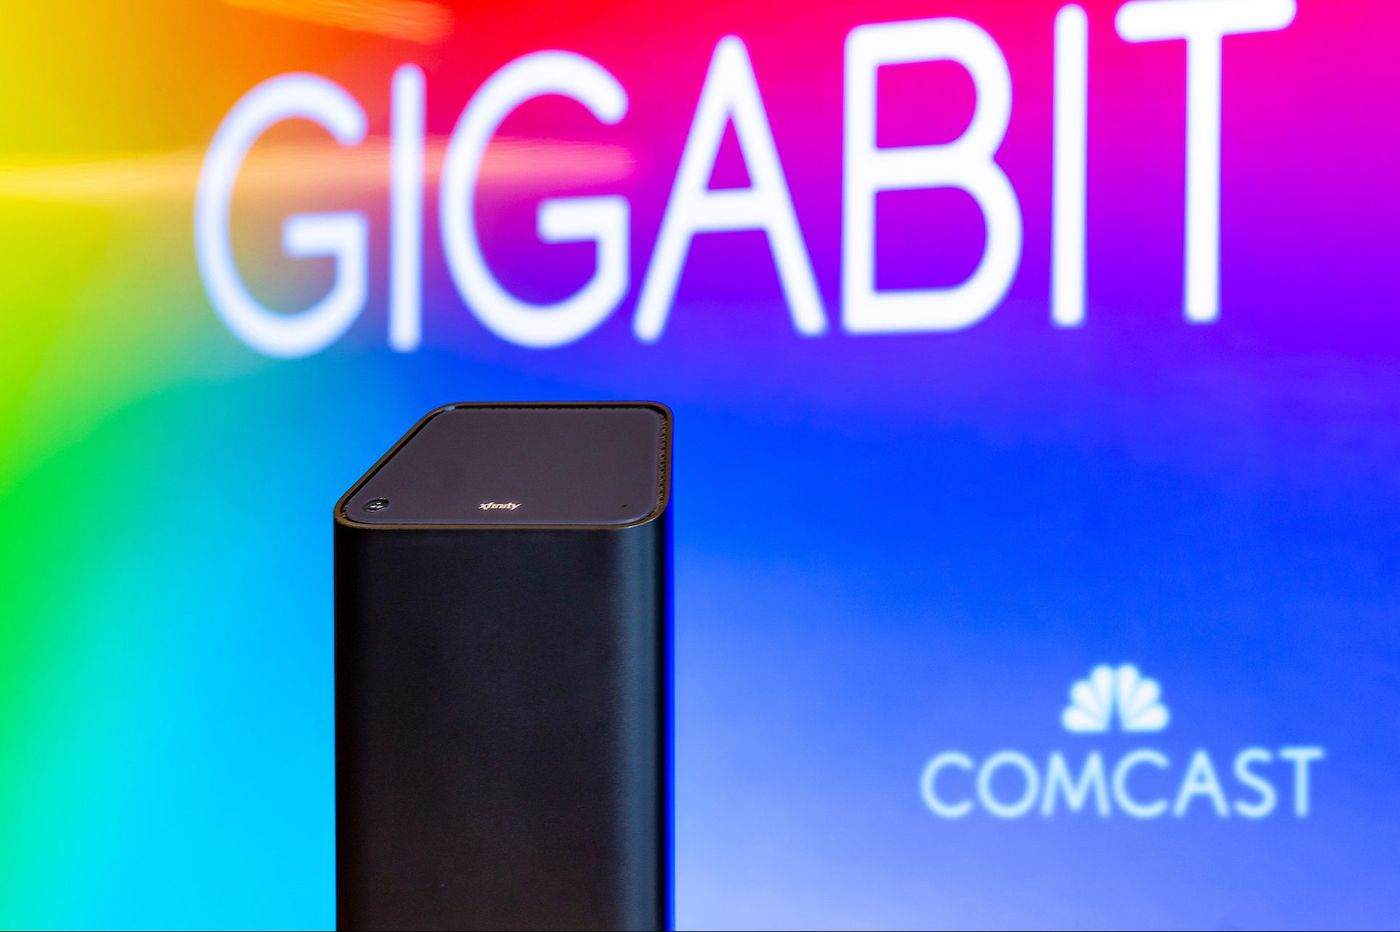 Comcast deployes gigabit internet to 58 mln premises